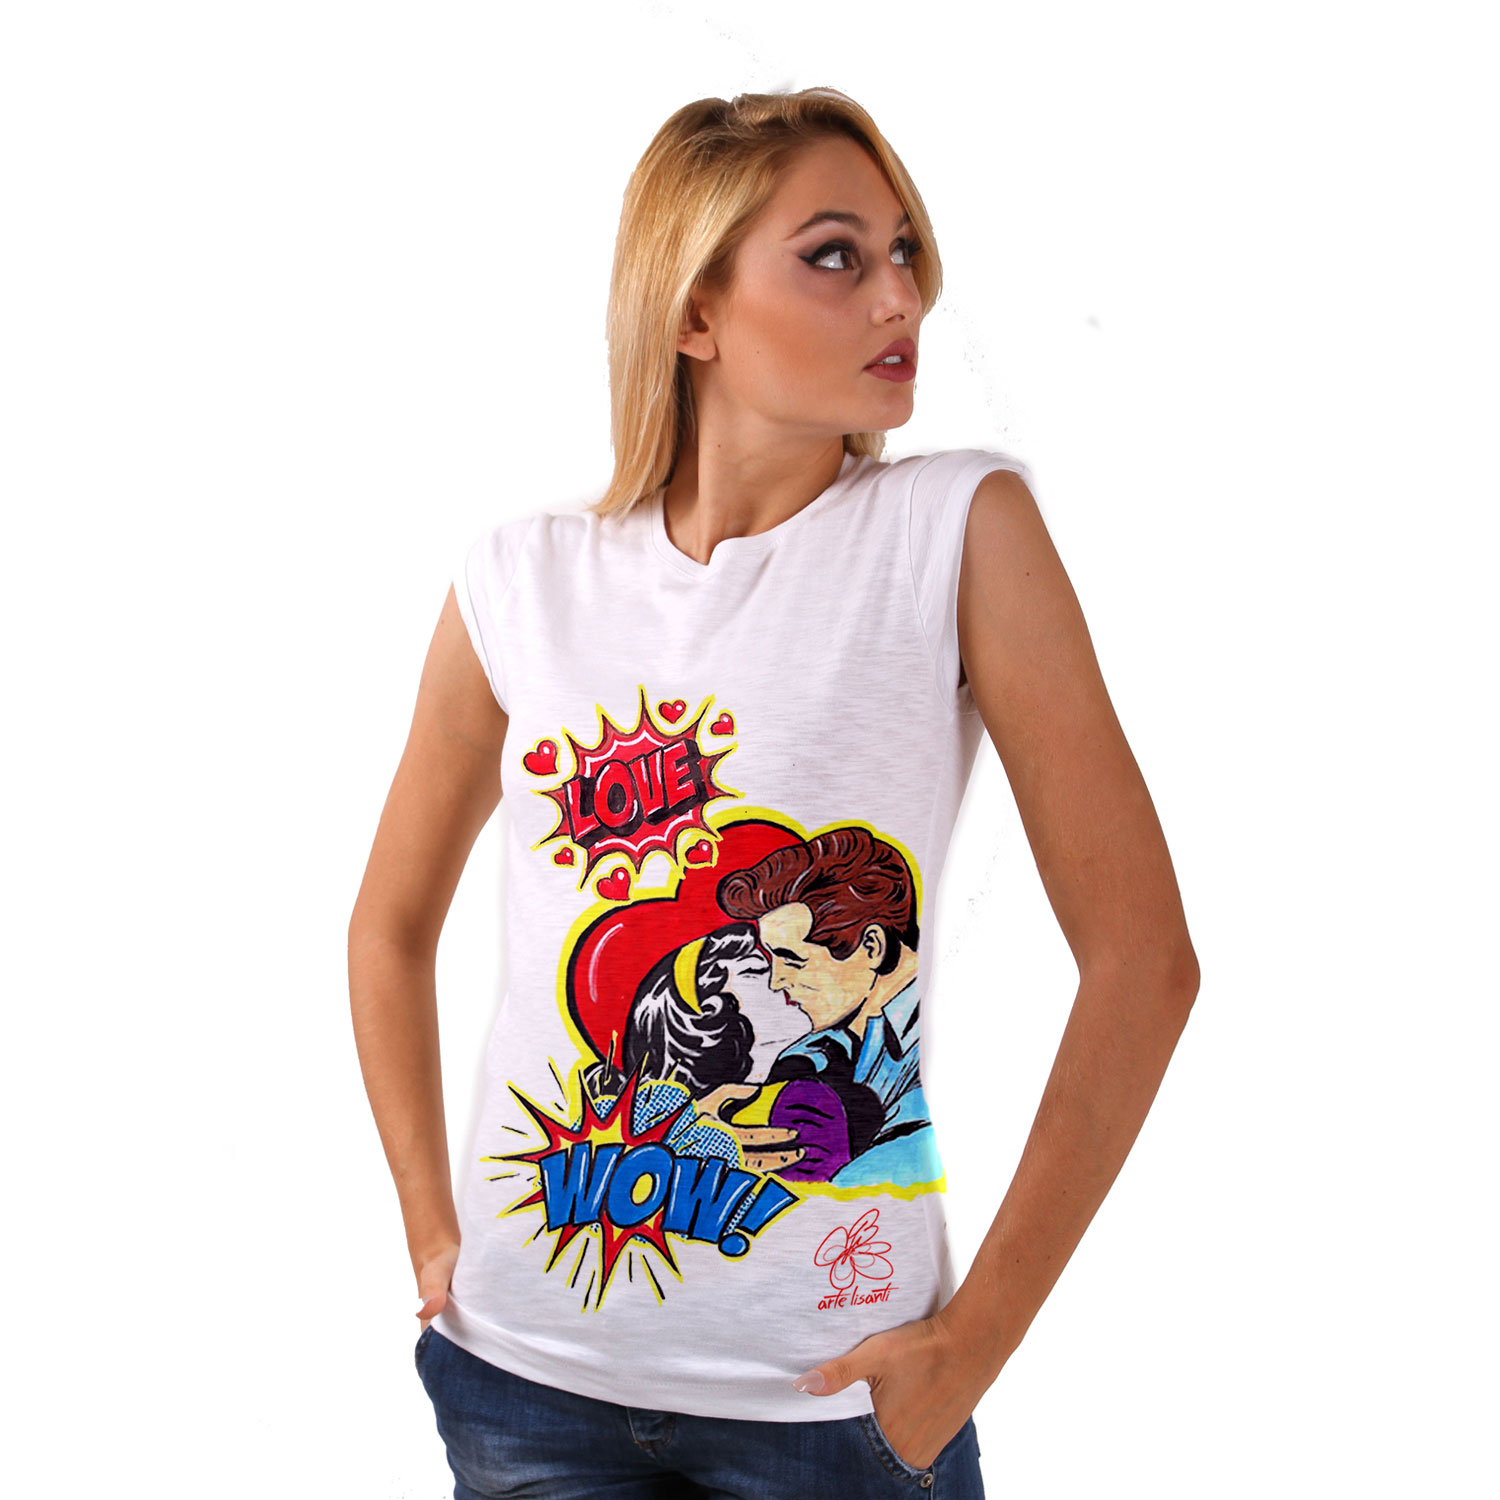 Hand-painted T-shirt - Love, tribute to Roy Lichtenstein